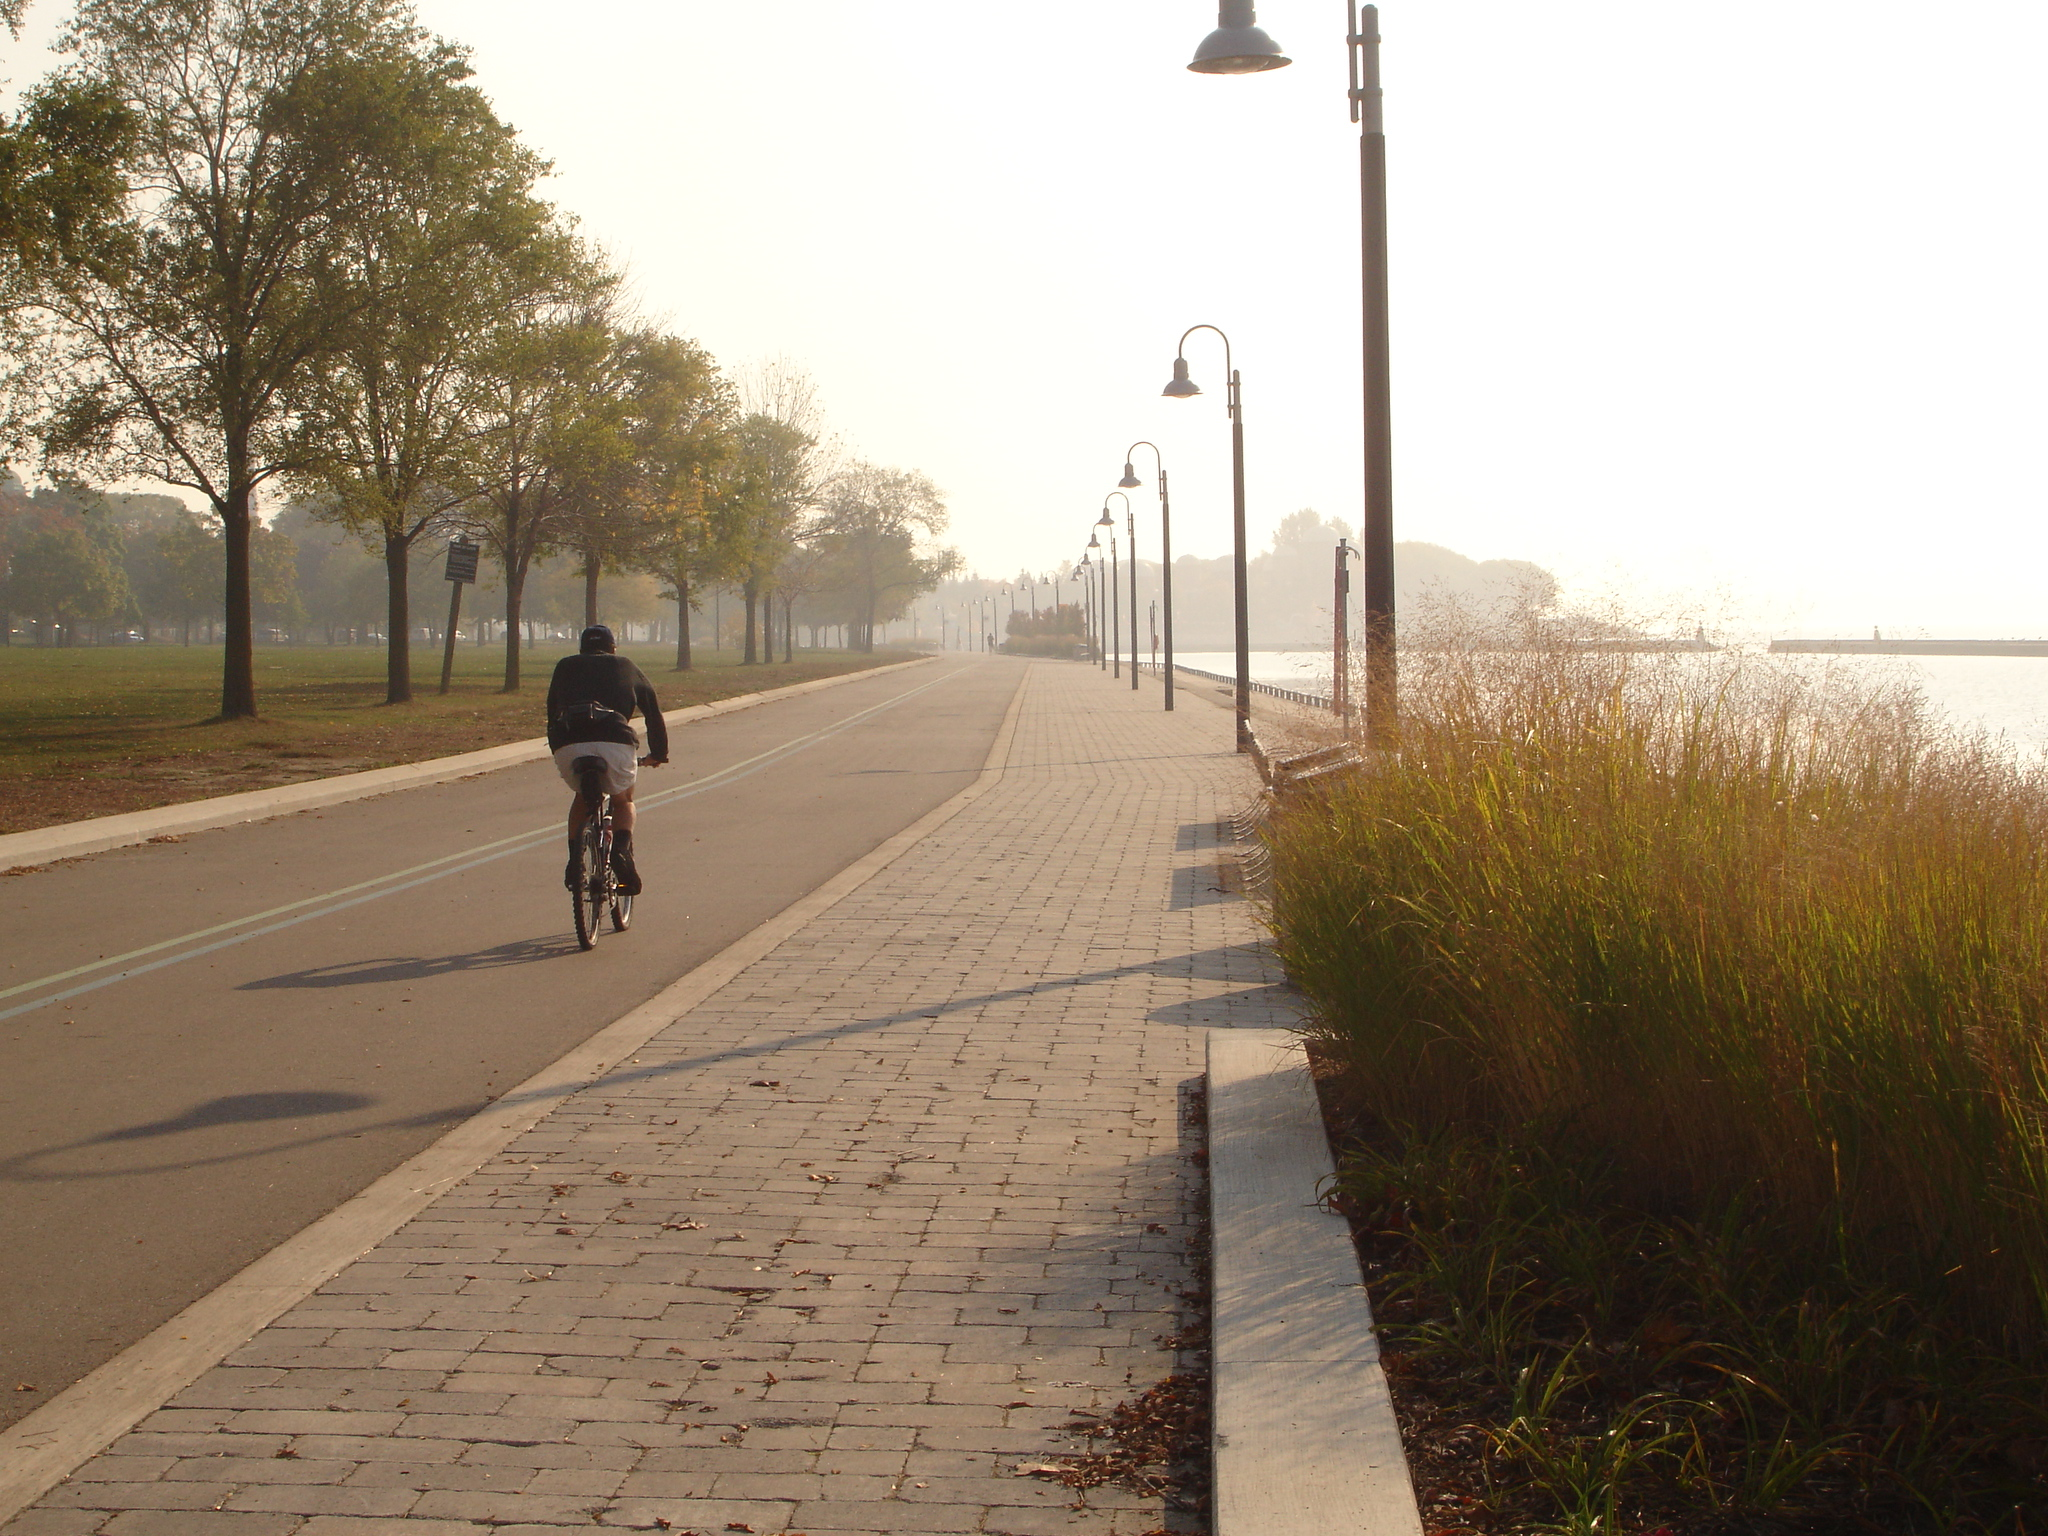 Martin Goodman Trail and Waterfront Promenade